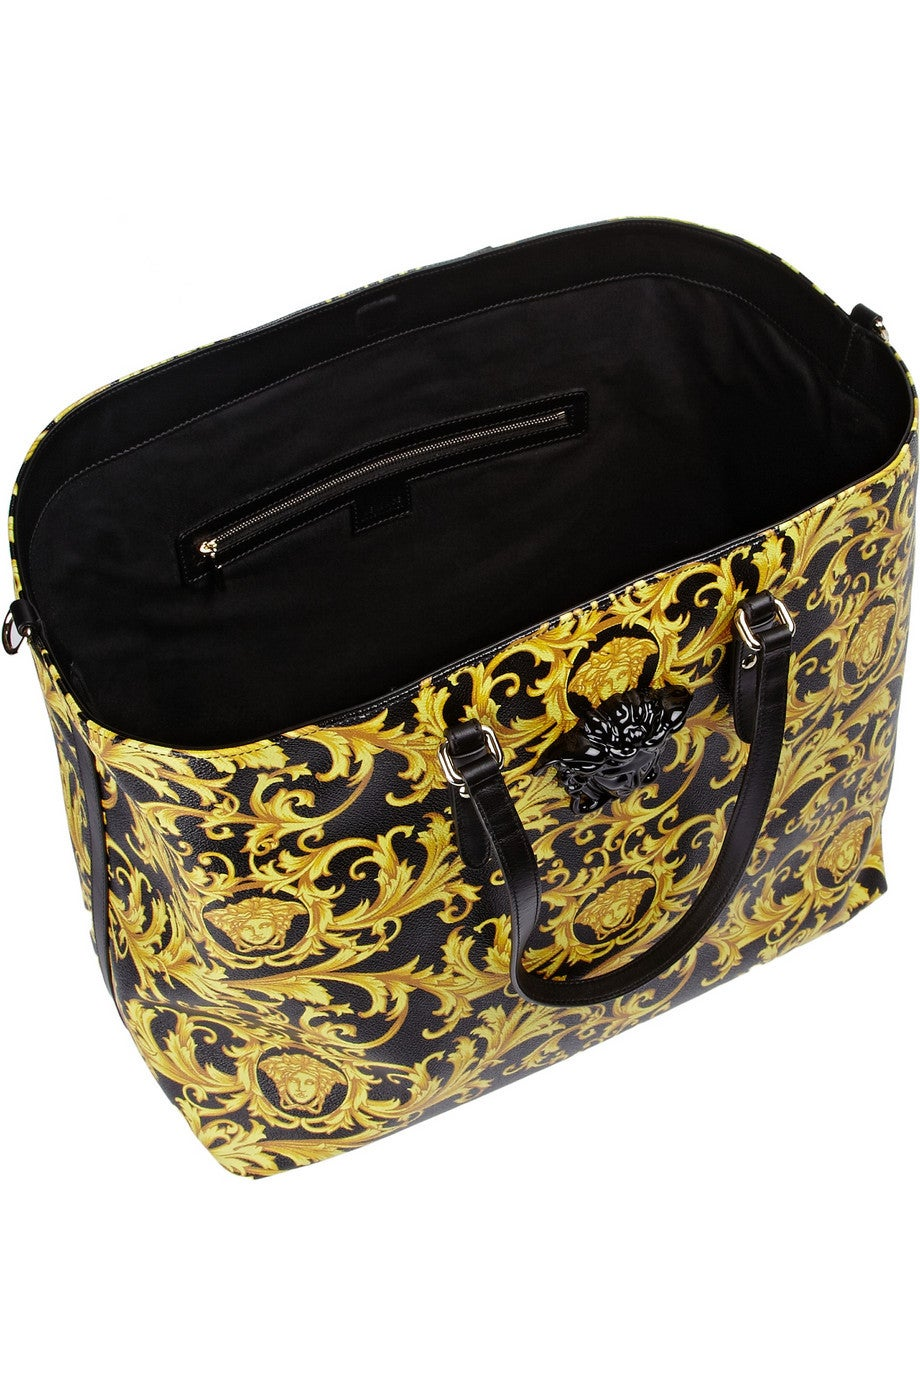 NEW Versace Black and Gold Baroque Printed Tote Bag with Medusa In New  Condition For Sale a760159c6acdb